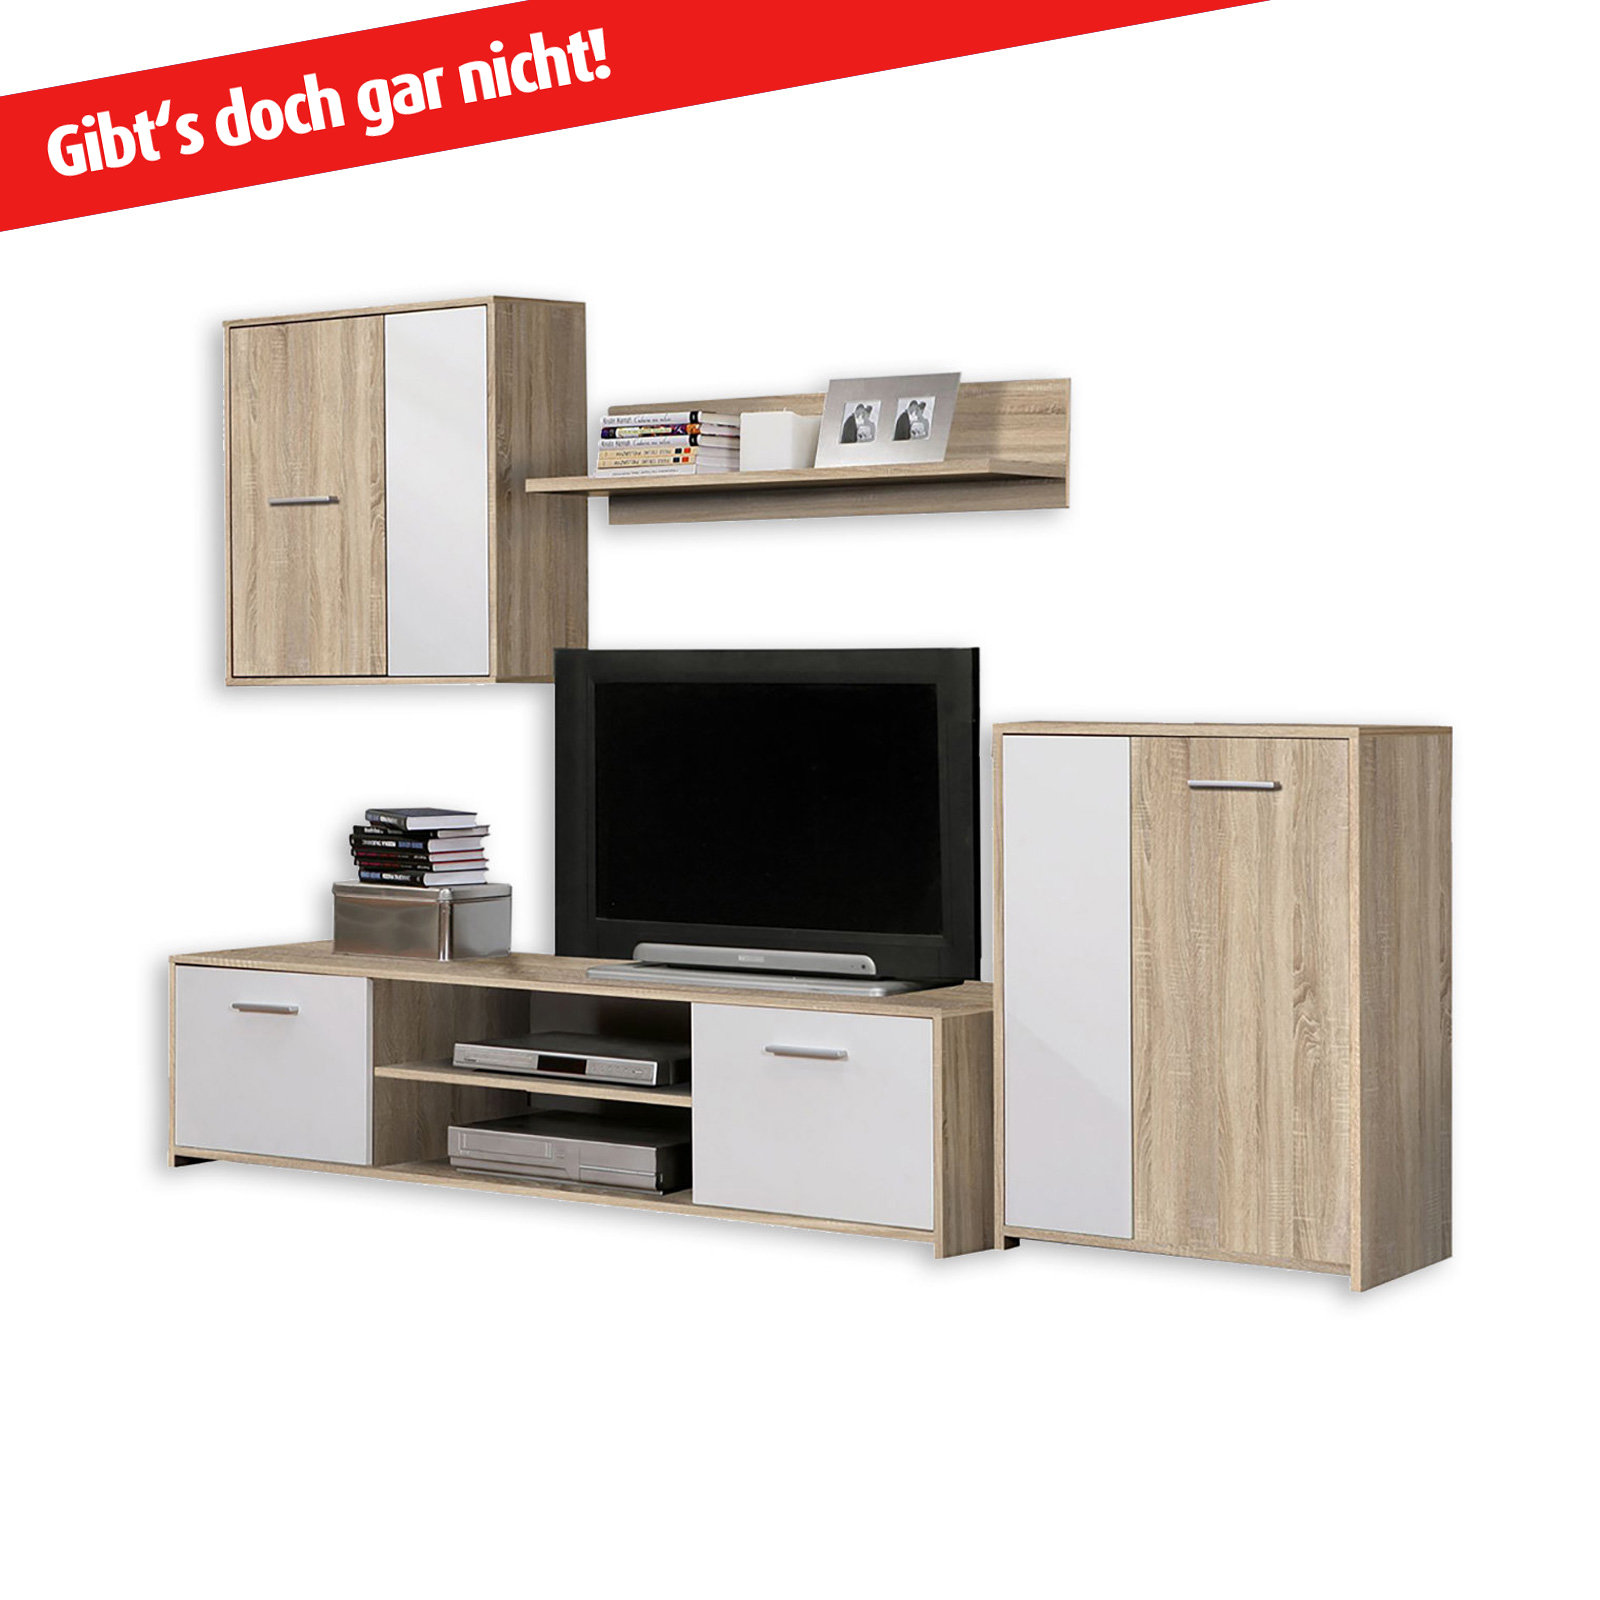 wohnwand paco in sonoma eiche von roller nur 99 99 cherry m bel roller. Black Bedroom Furniture Sets. Home Design Ideas